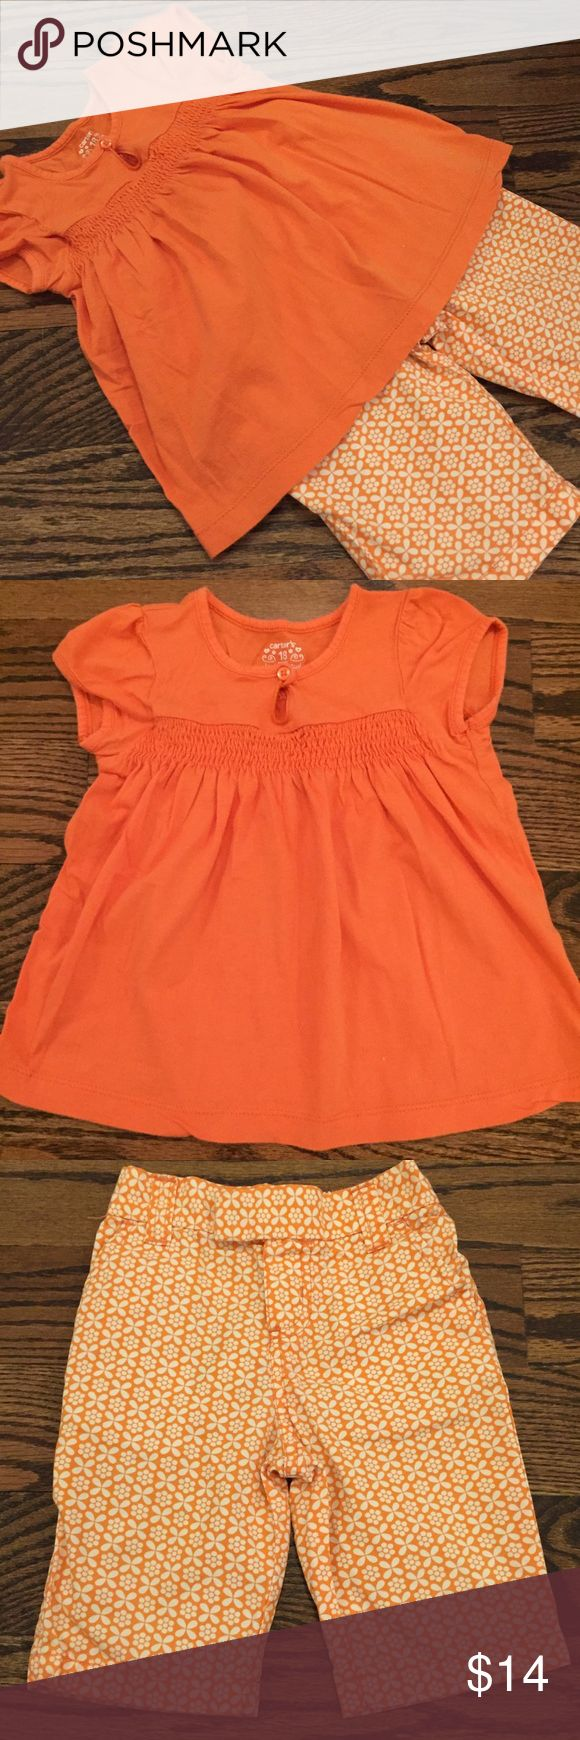 Orange Carter's Capri set She'll be ready for spring in this 🍊 set from Carter's.  The set includes a smocked top and matching patterned capris.  Both are size 18 months.  The pants are in very good used condition.  The hem on the top has a gentle scallop (see pic 5) which I can't remember whether it was purchased like that or if it happened in the wash.  Otherwise in very good used condition! Carter's Matching Sets